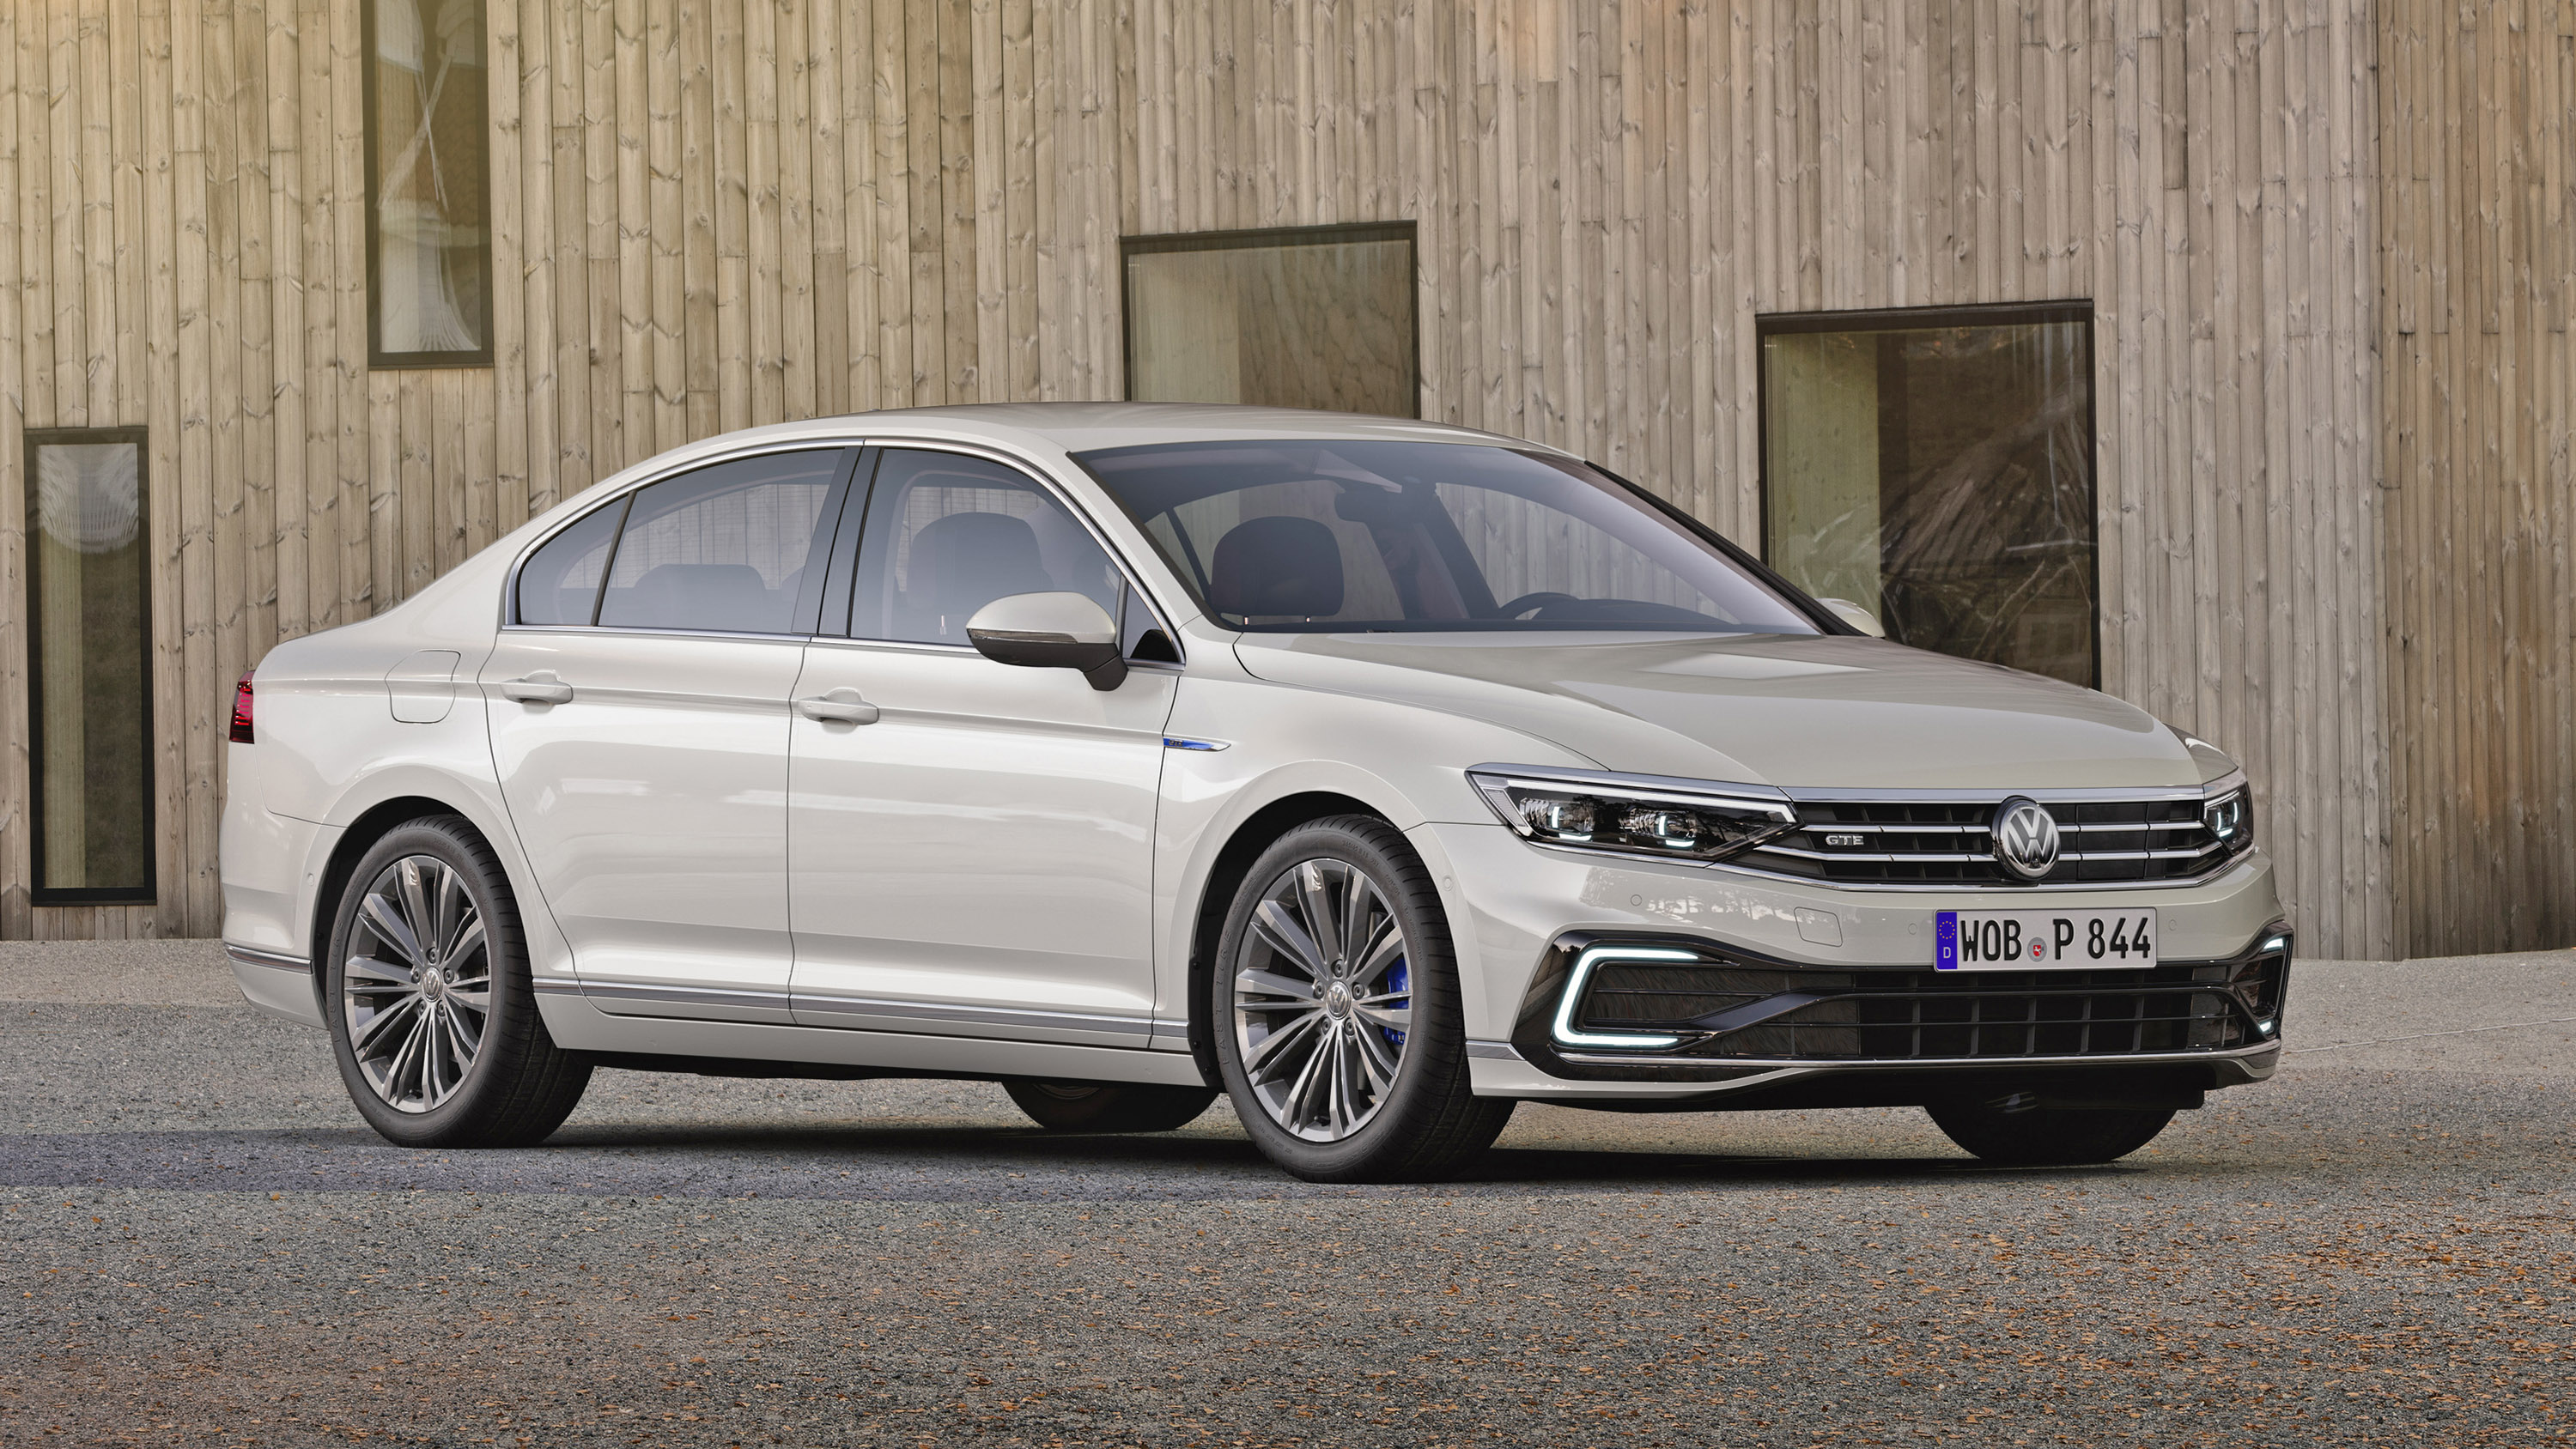 Volkswagen Passat Review And Buying Guide Best Deals And Prices Buyacar